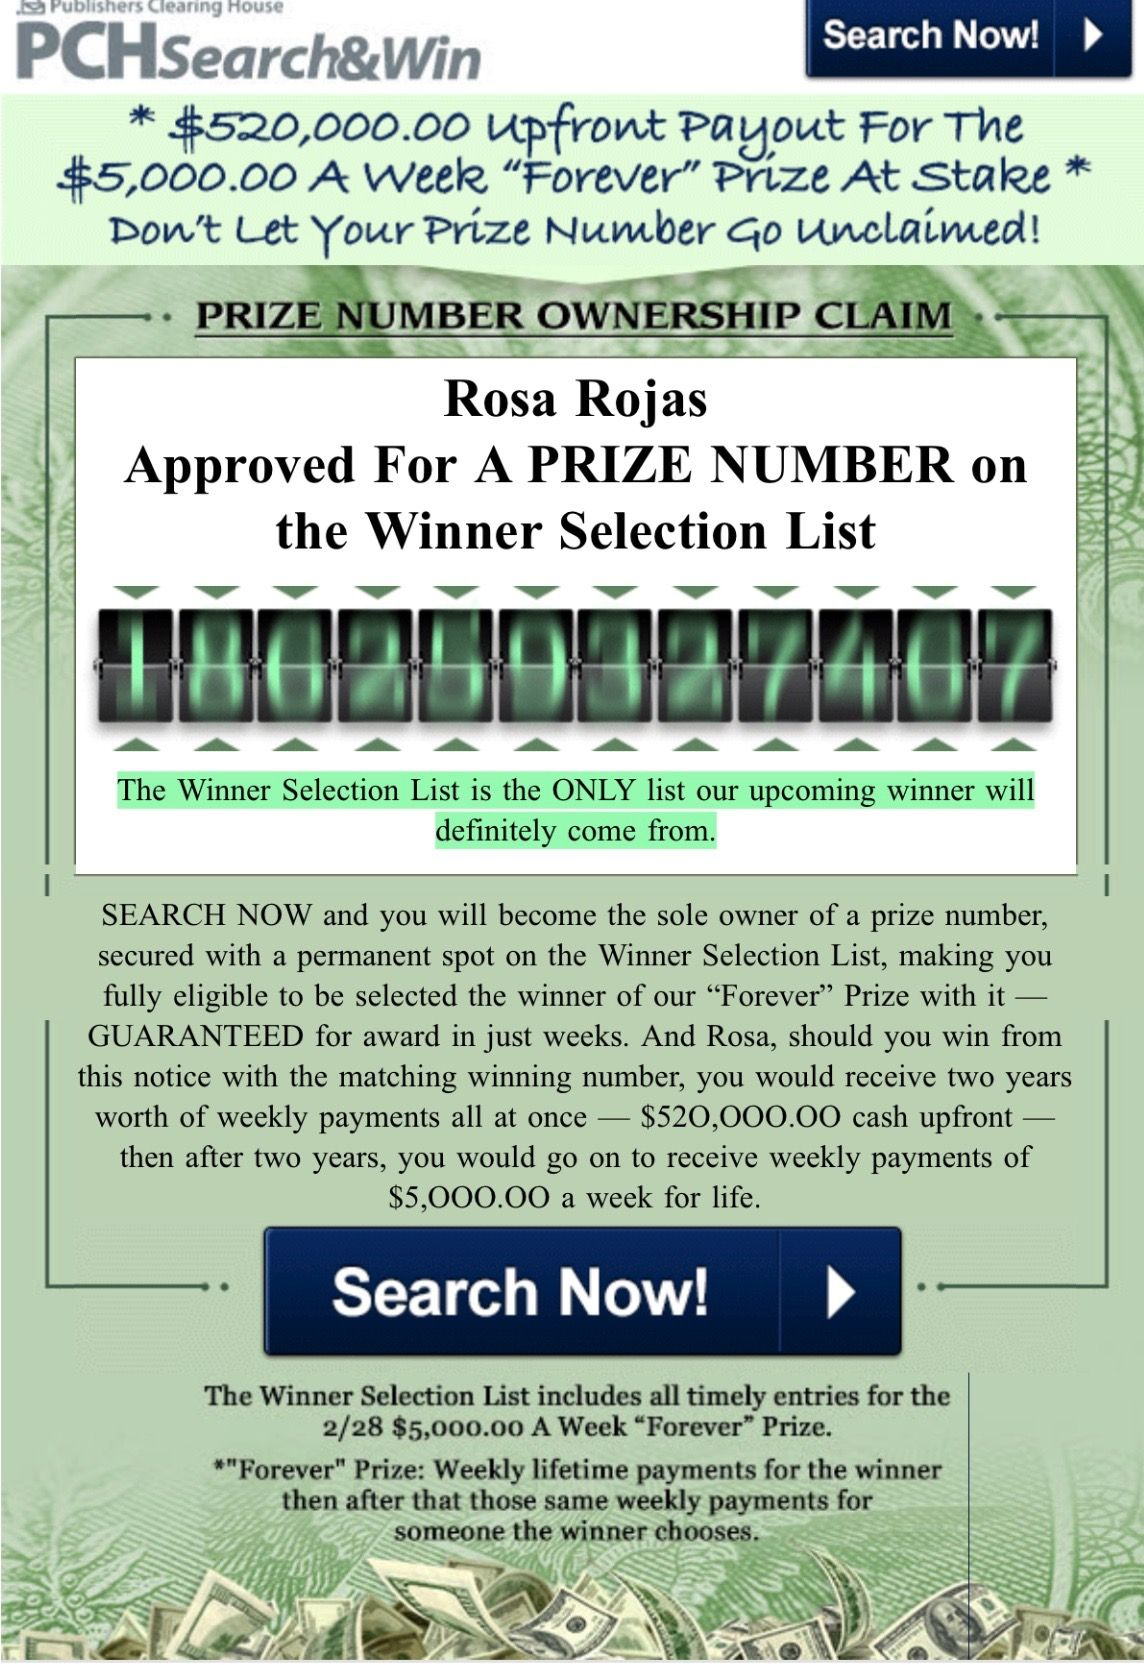 PCH PRIZE NUMBER CLAIM REQUEST I ROSA ROJAS CLAIM MY